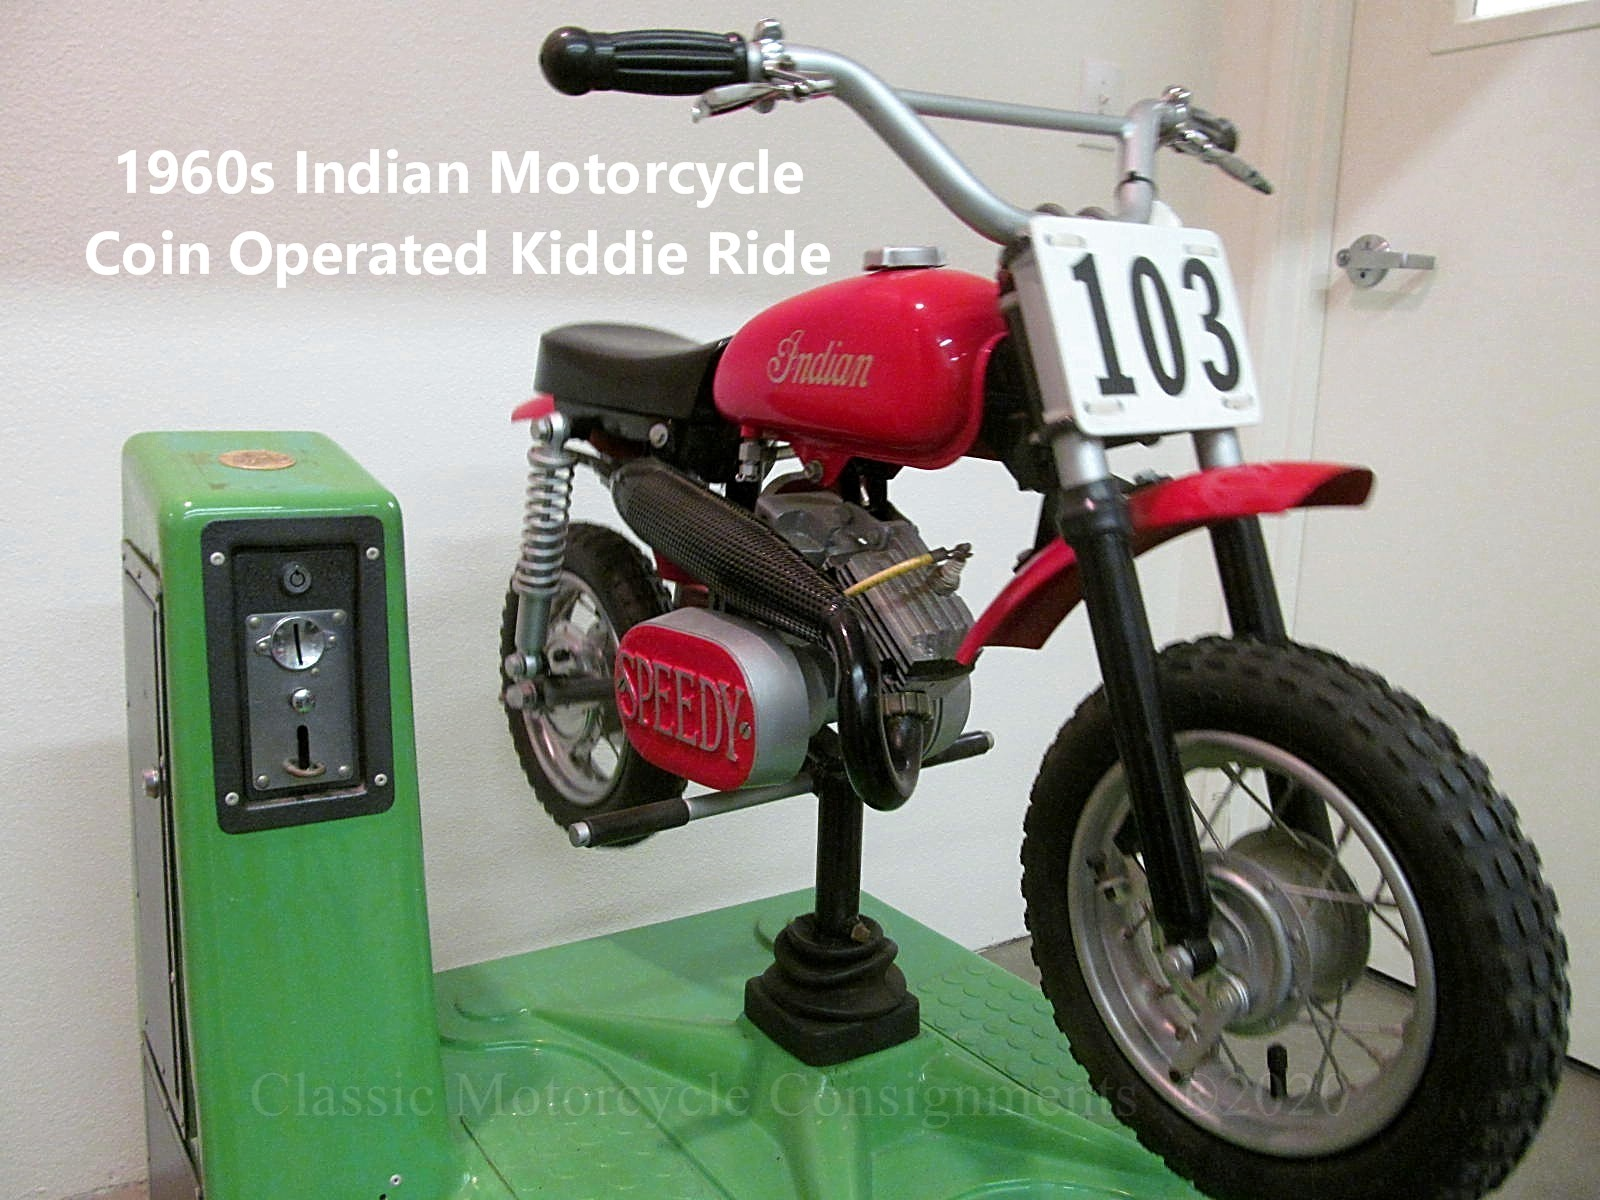 1960s-70s Indian Motorcycle Kiddie Ride